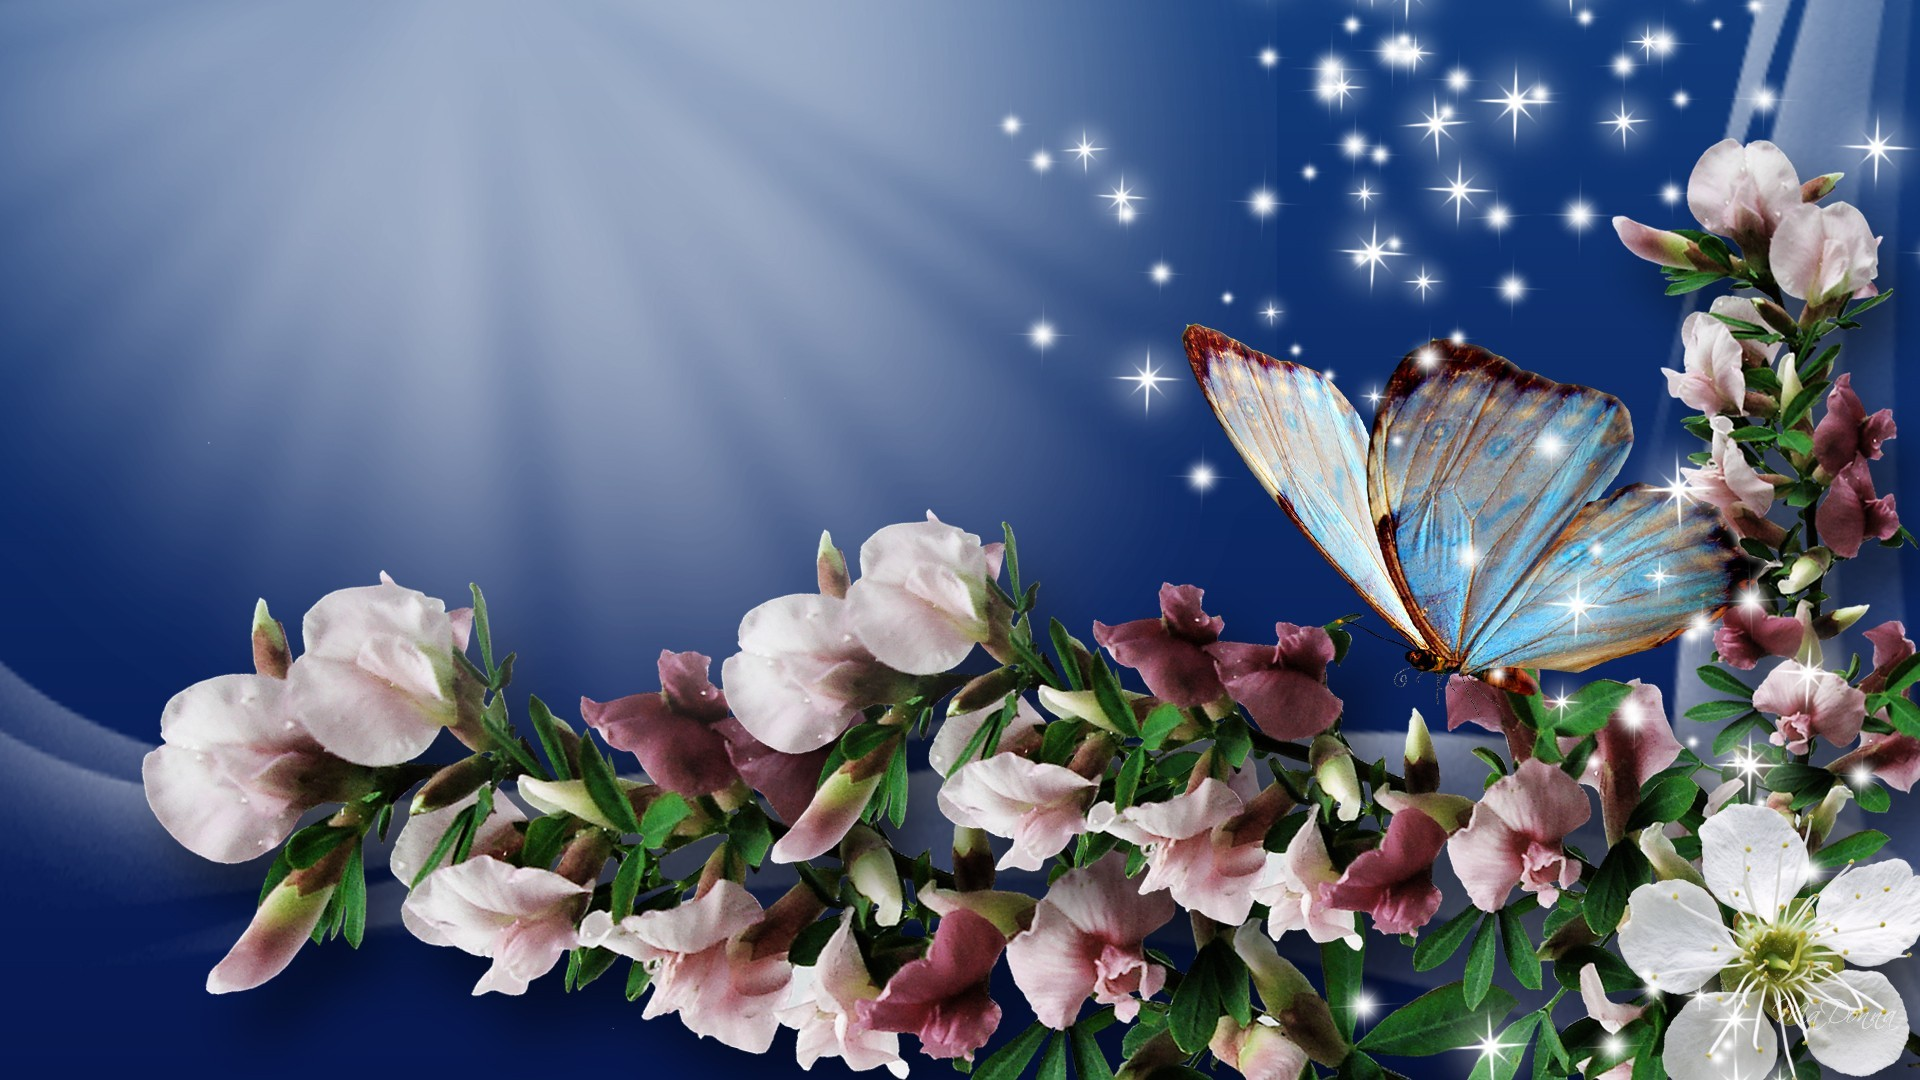 Spring Flowers And Butterflies Wallpaper 27